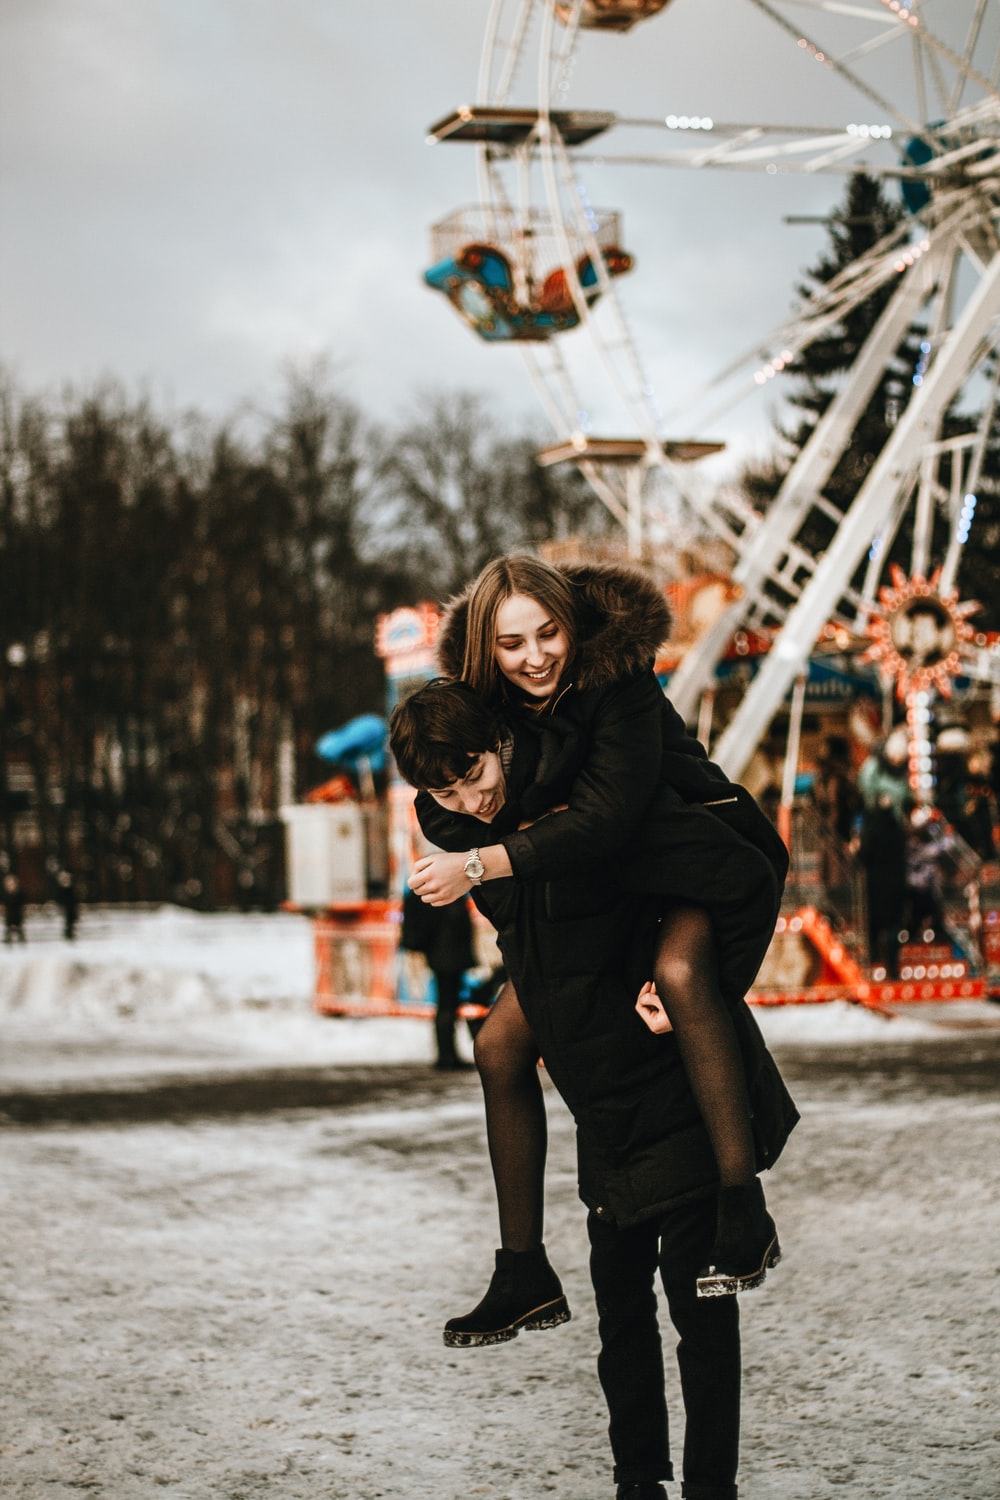 man carrying woman in front of ferris wheel